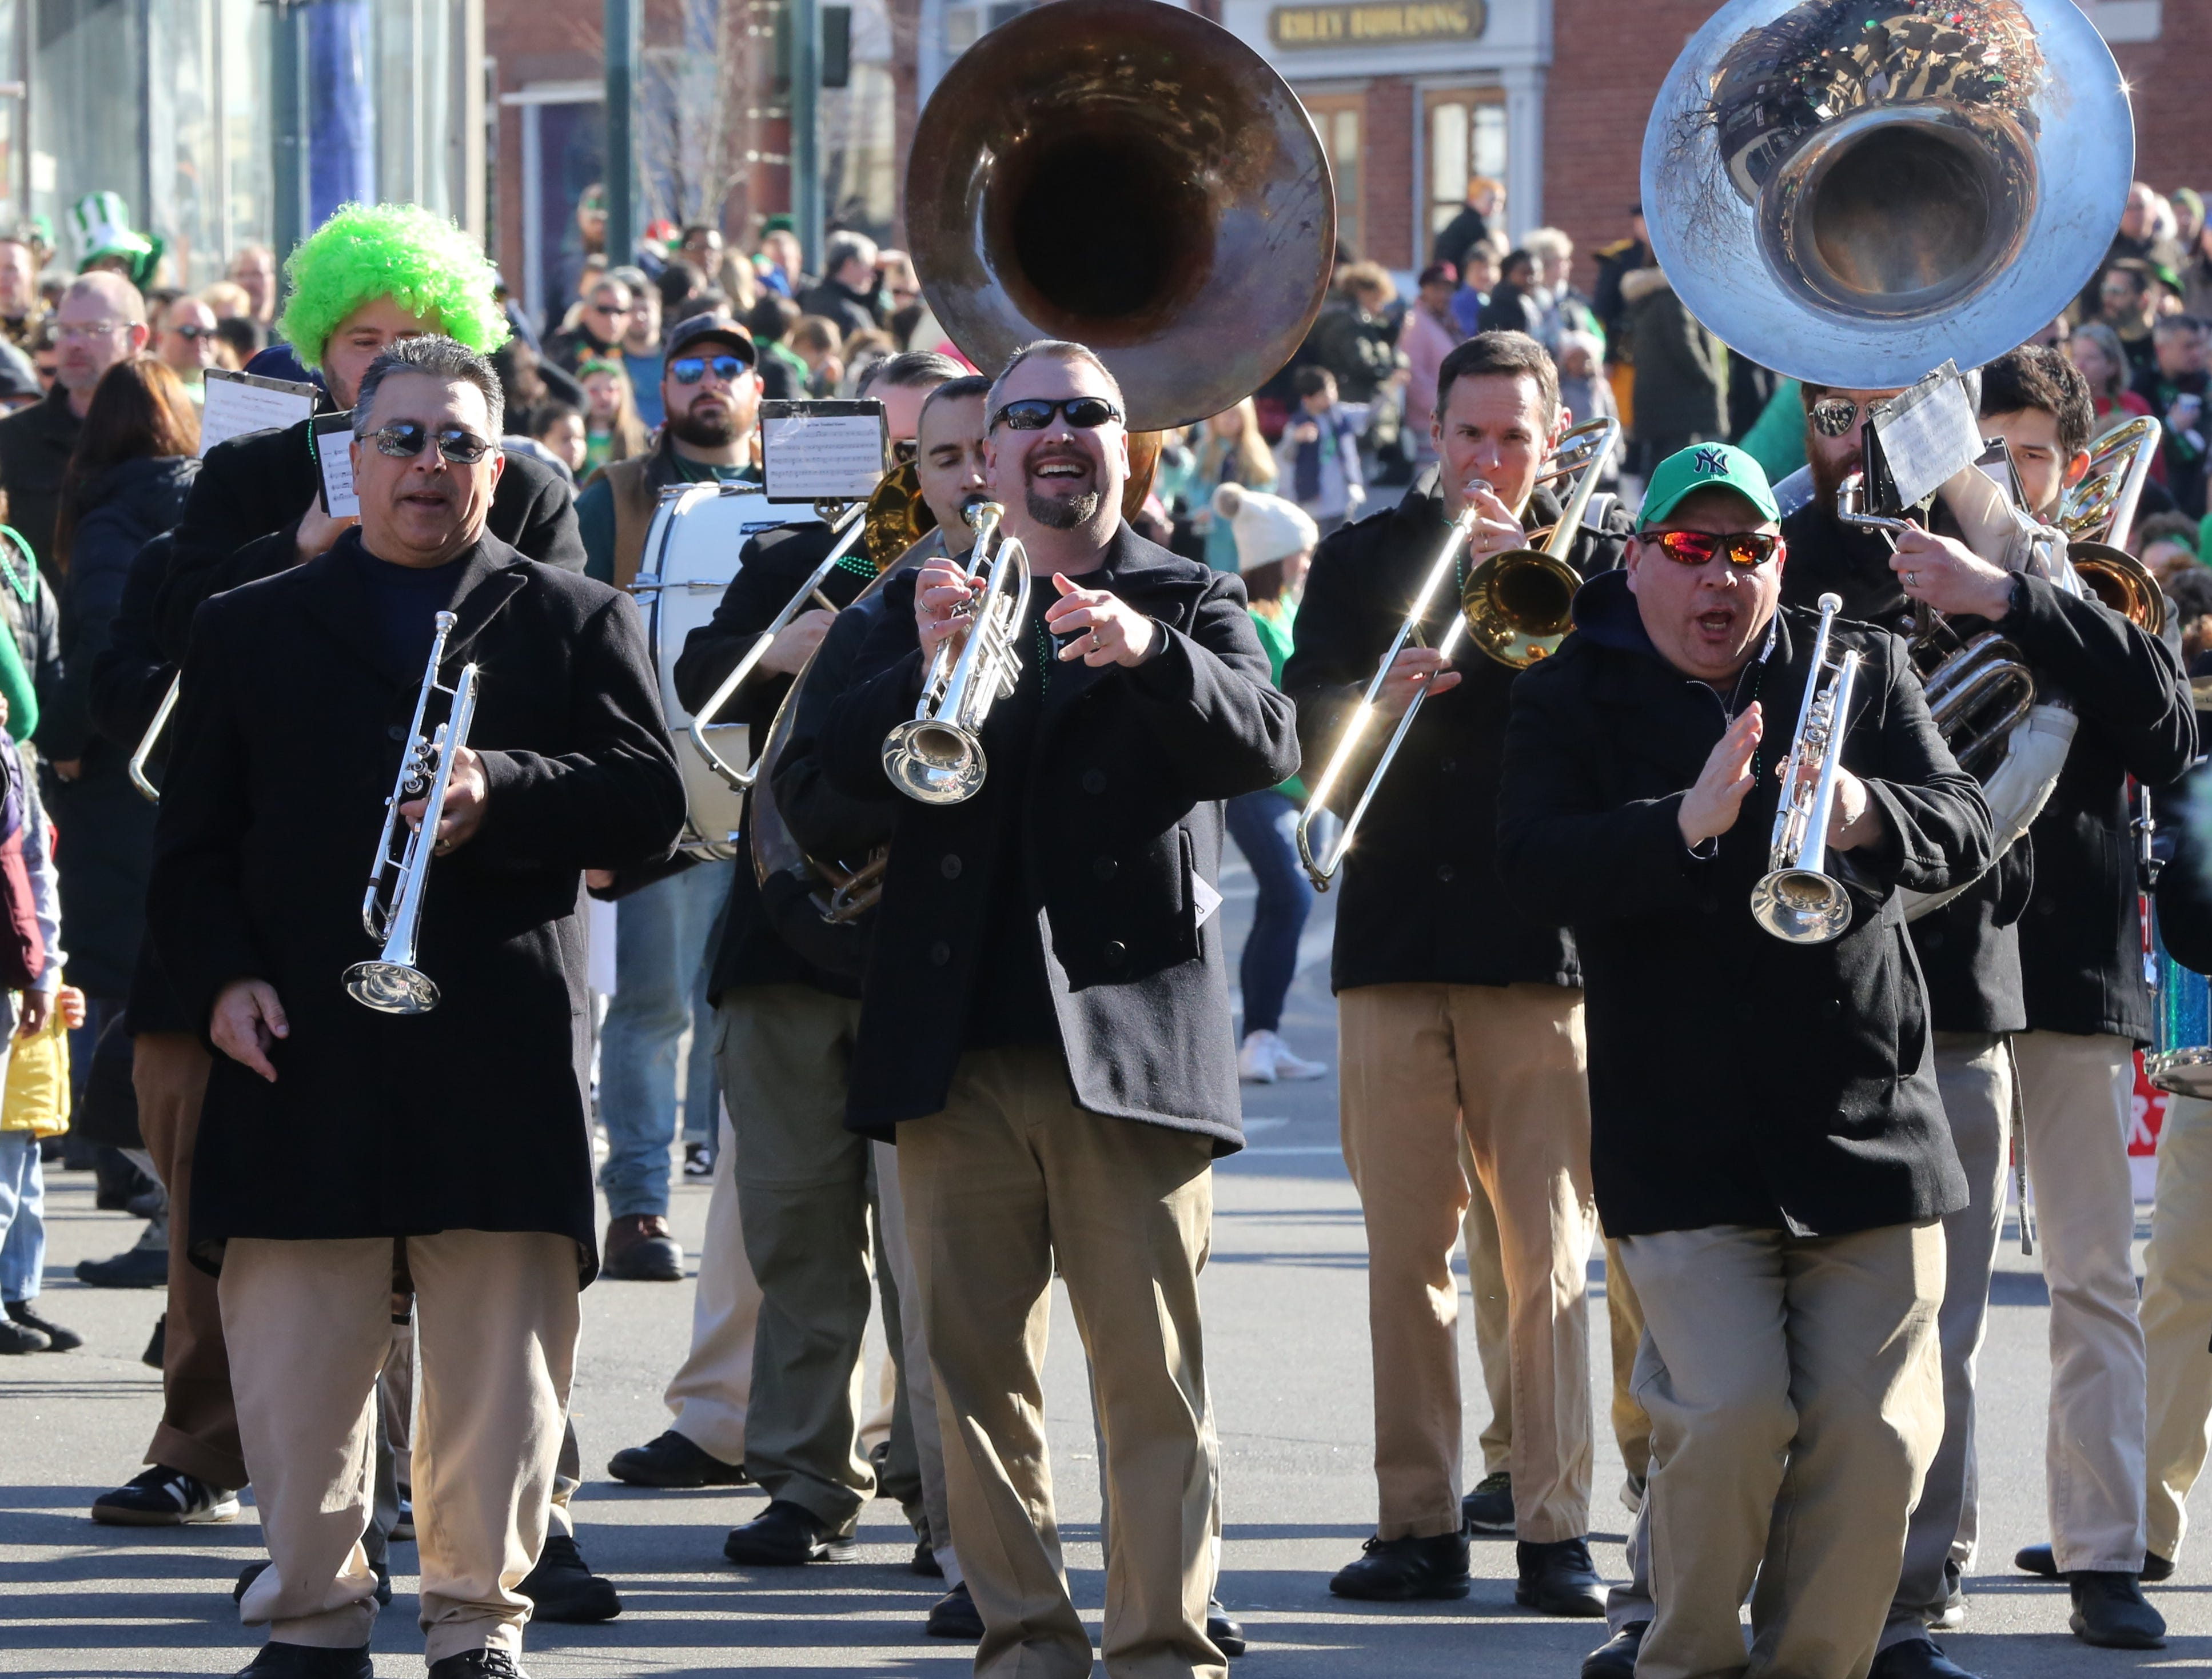 The 30th Annual Peekskill St. PatrickÕs Day Parade in Peekskill March 9, 2019.